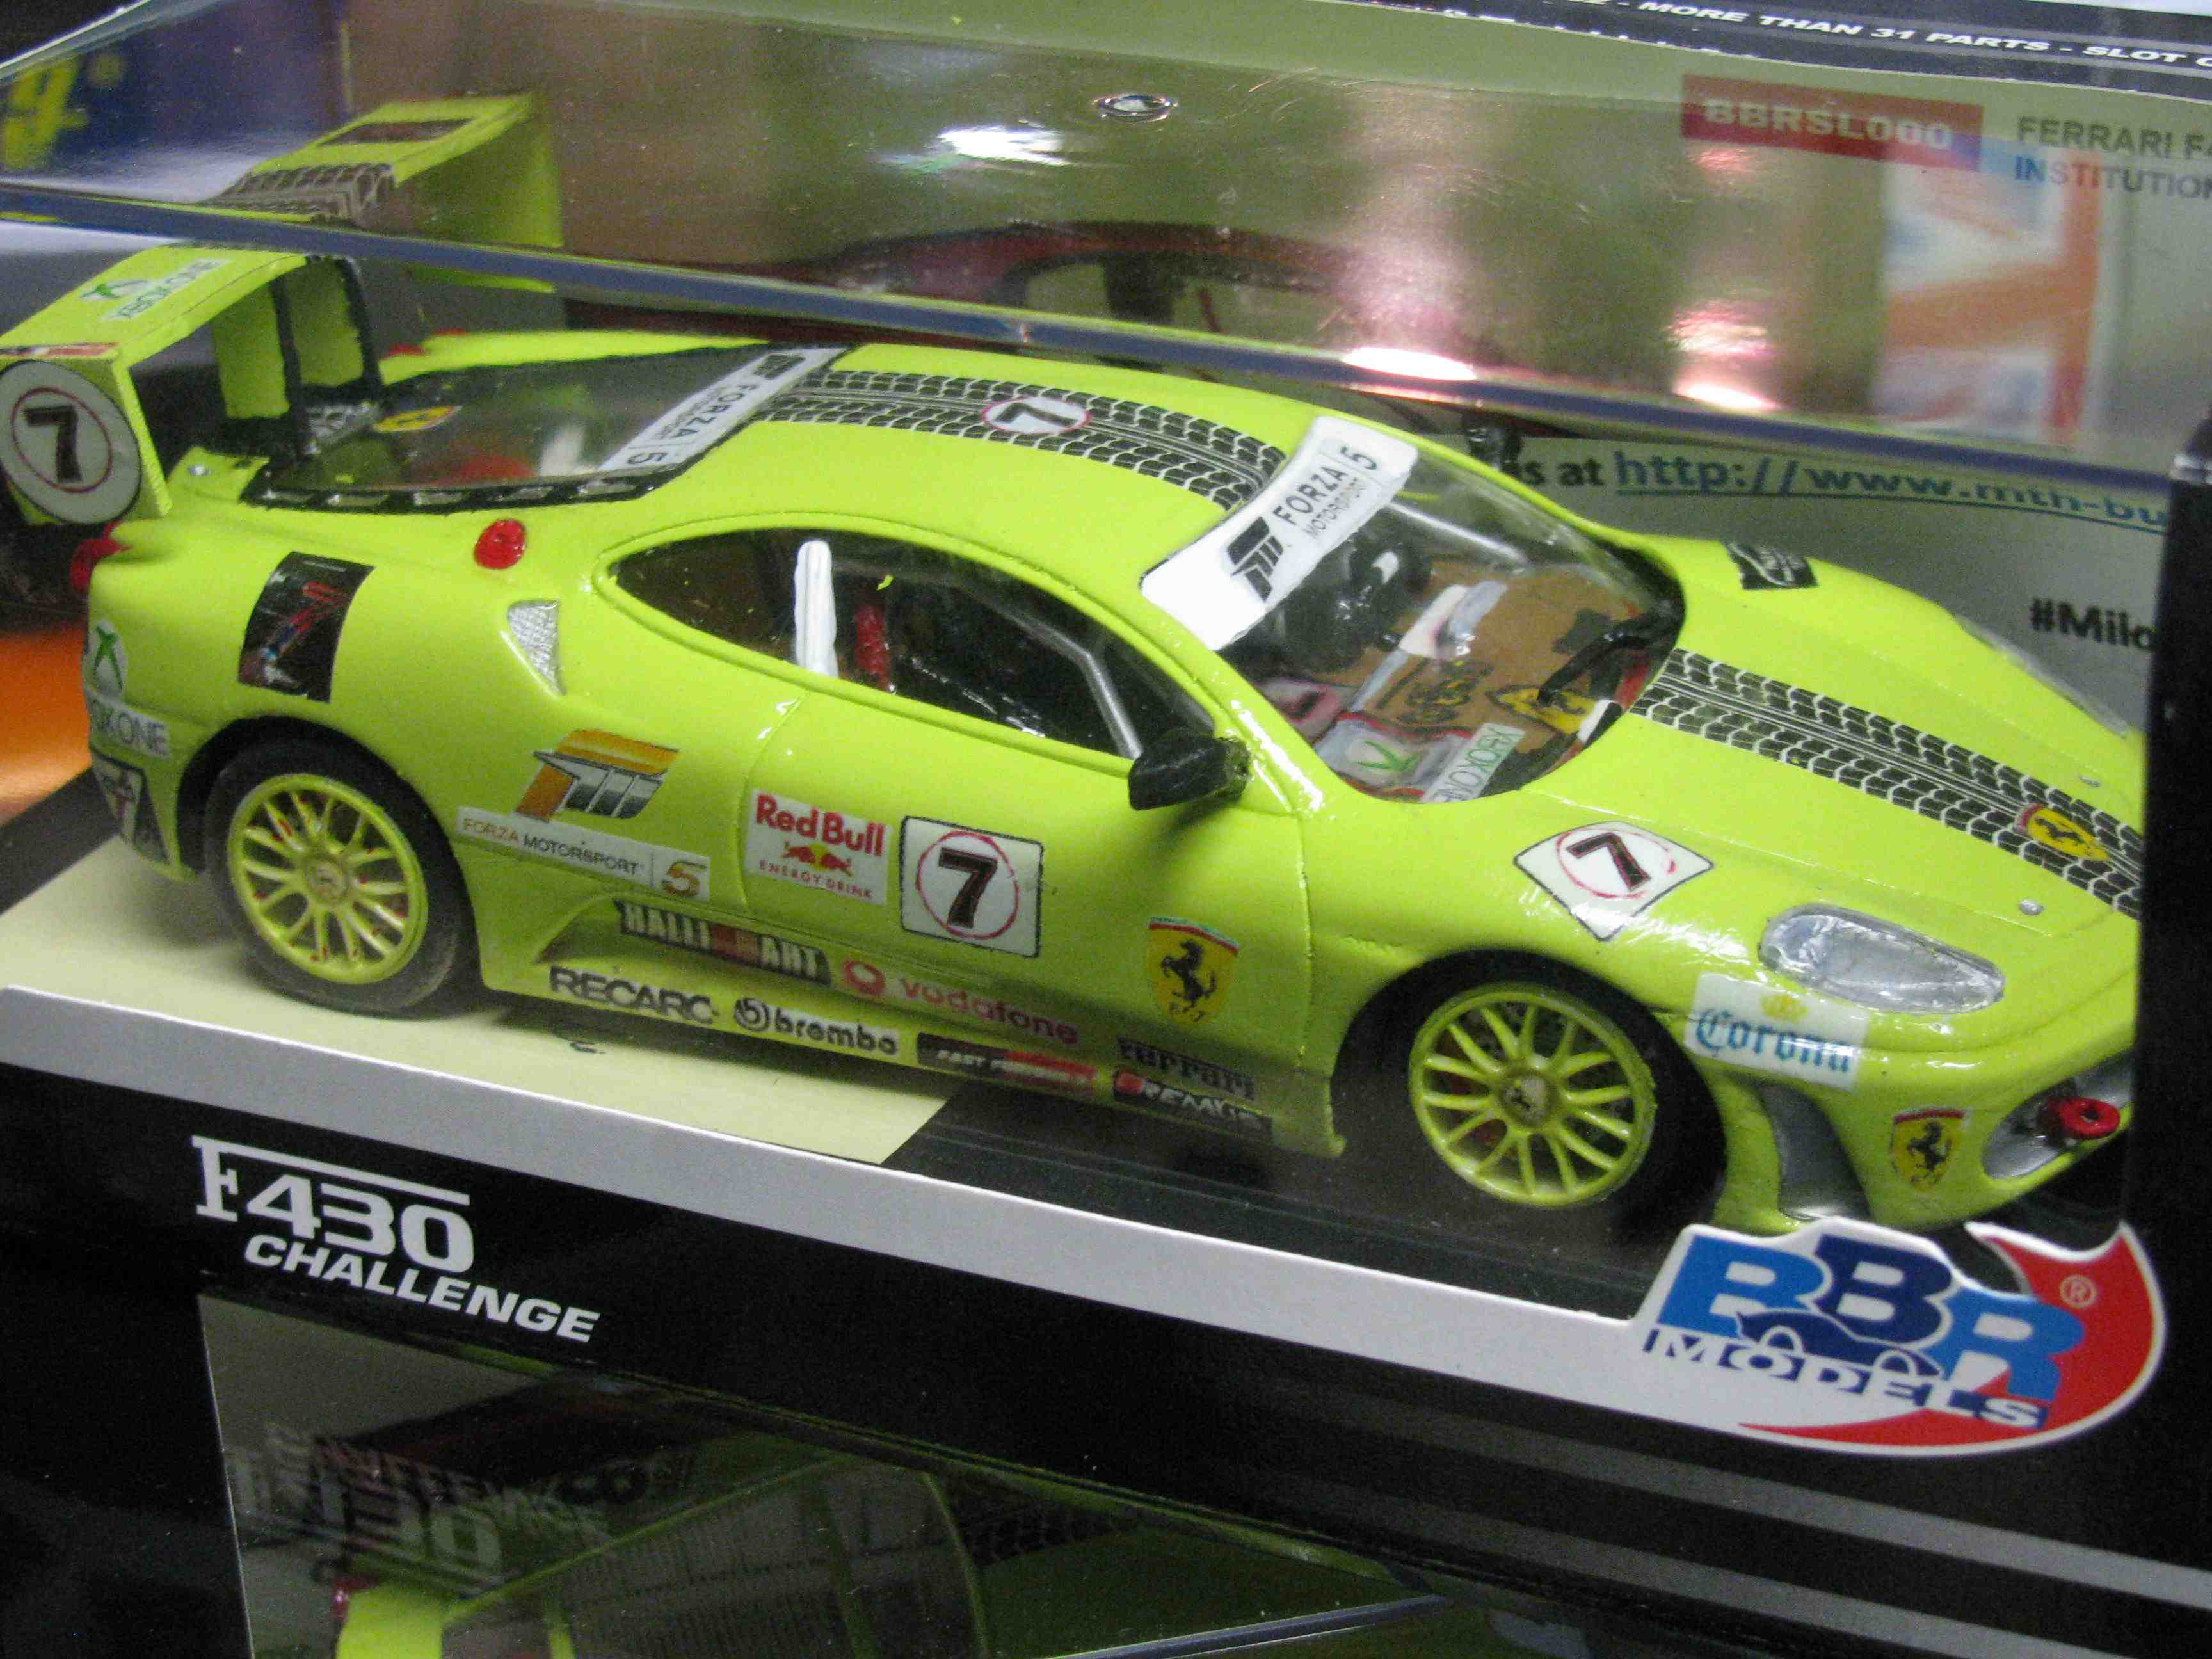 ***SOLD*** Ferrari F430 Challenge Slot Car in Key Lime Green, Custom Decal Design with Custom Rear Spoiler – Car 7